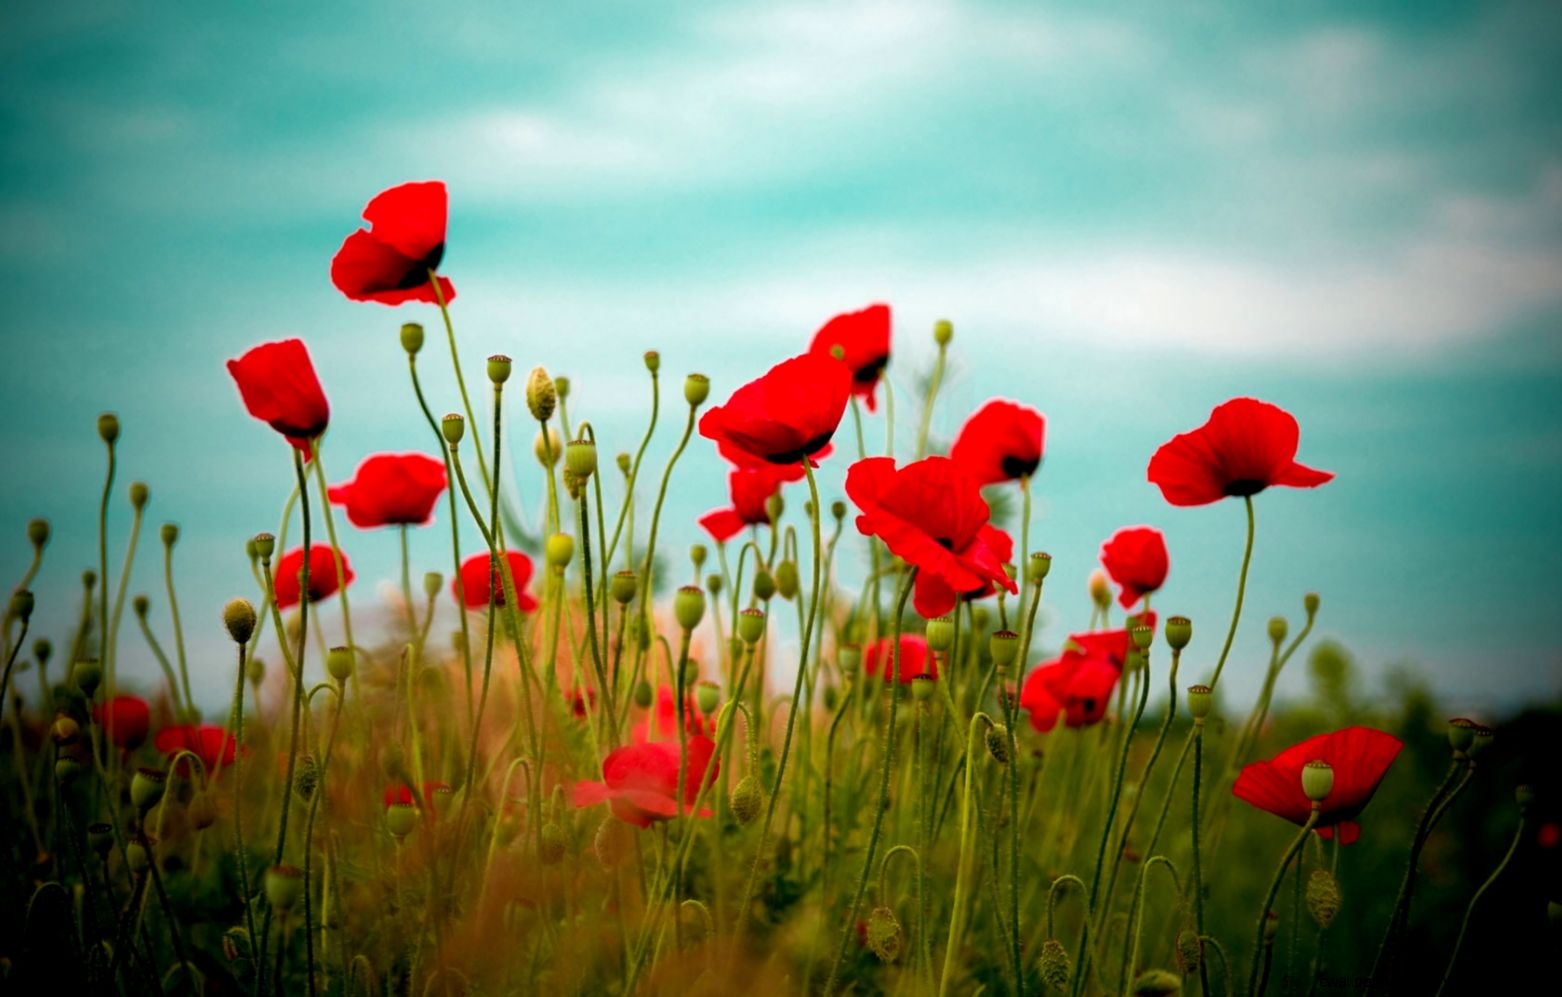 Wallpapers Of The Day Red Flowers HD  1920x1080 Red Flowers HD